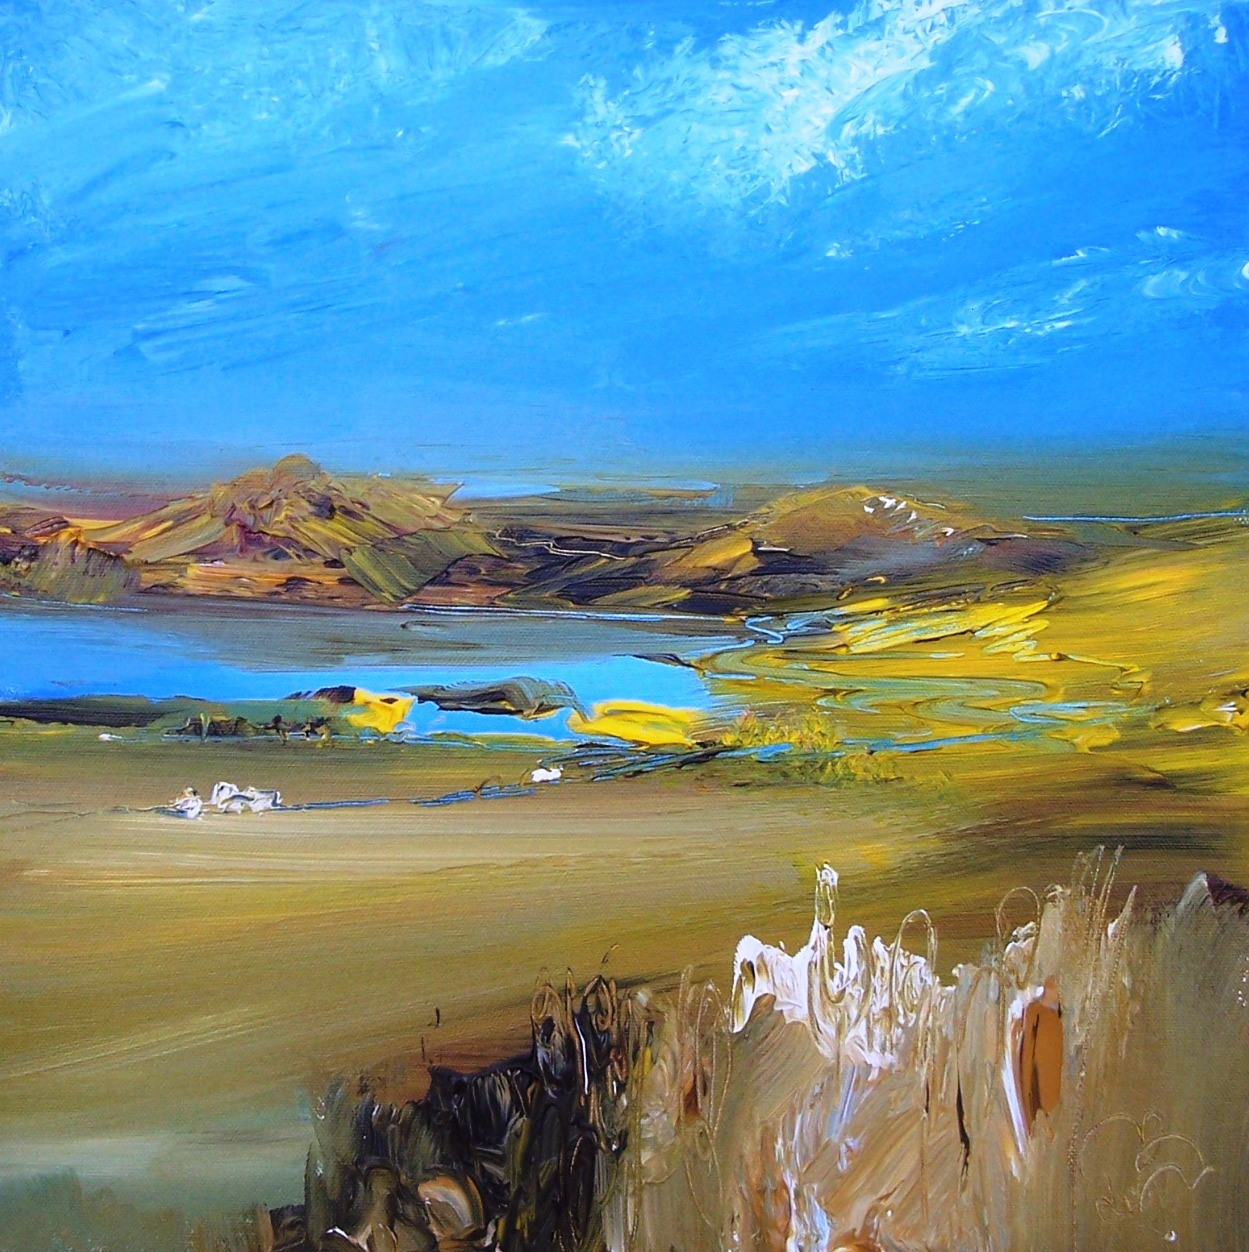 'Looking towards the Loch' by artist Rosanne Barr